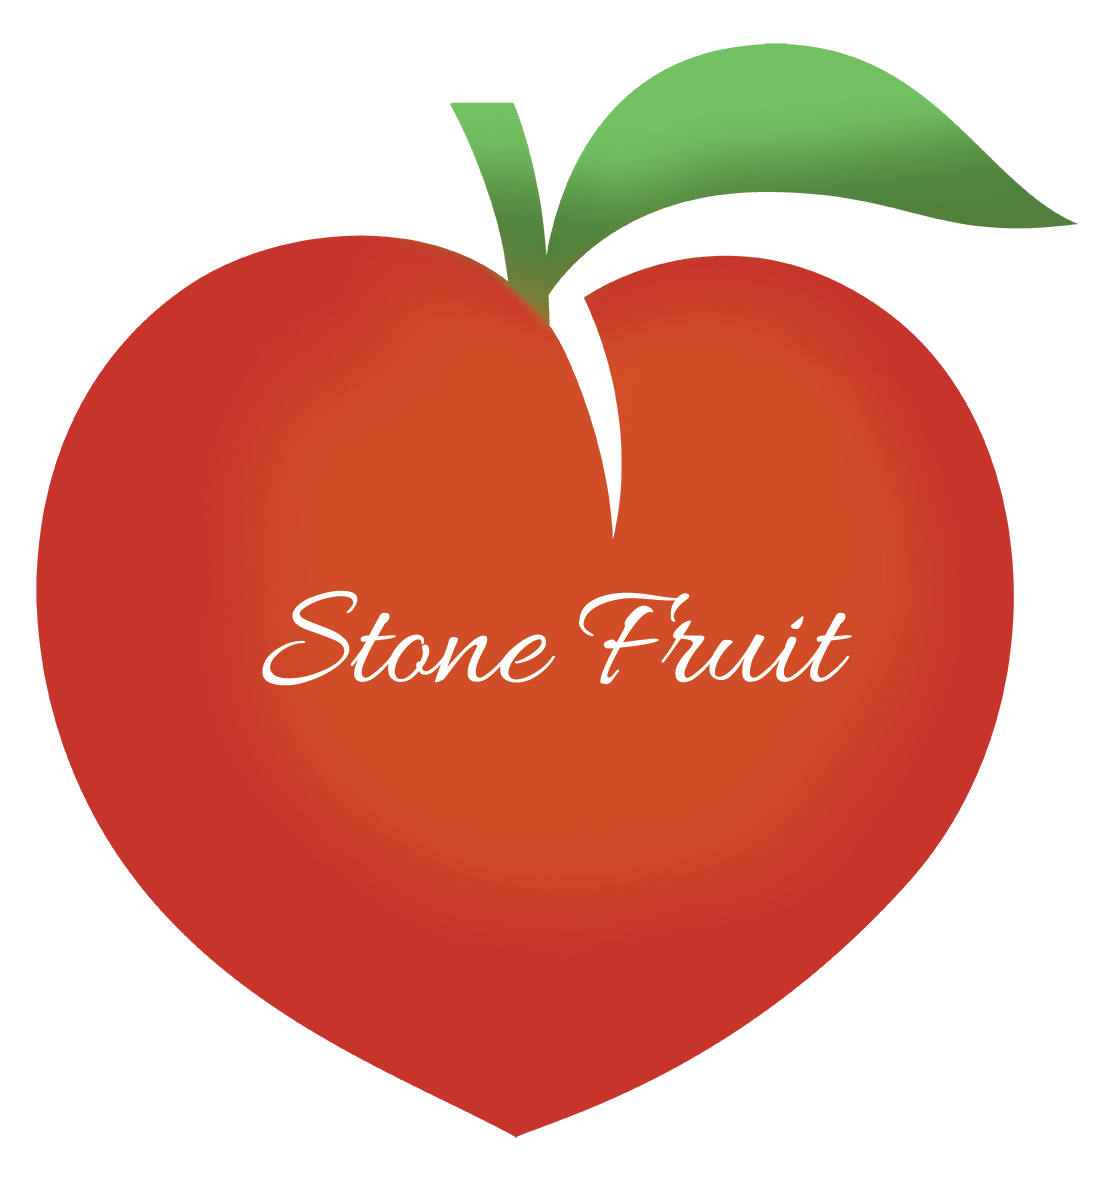 Stone_Fruit.png